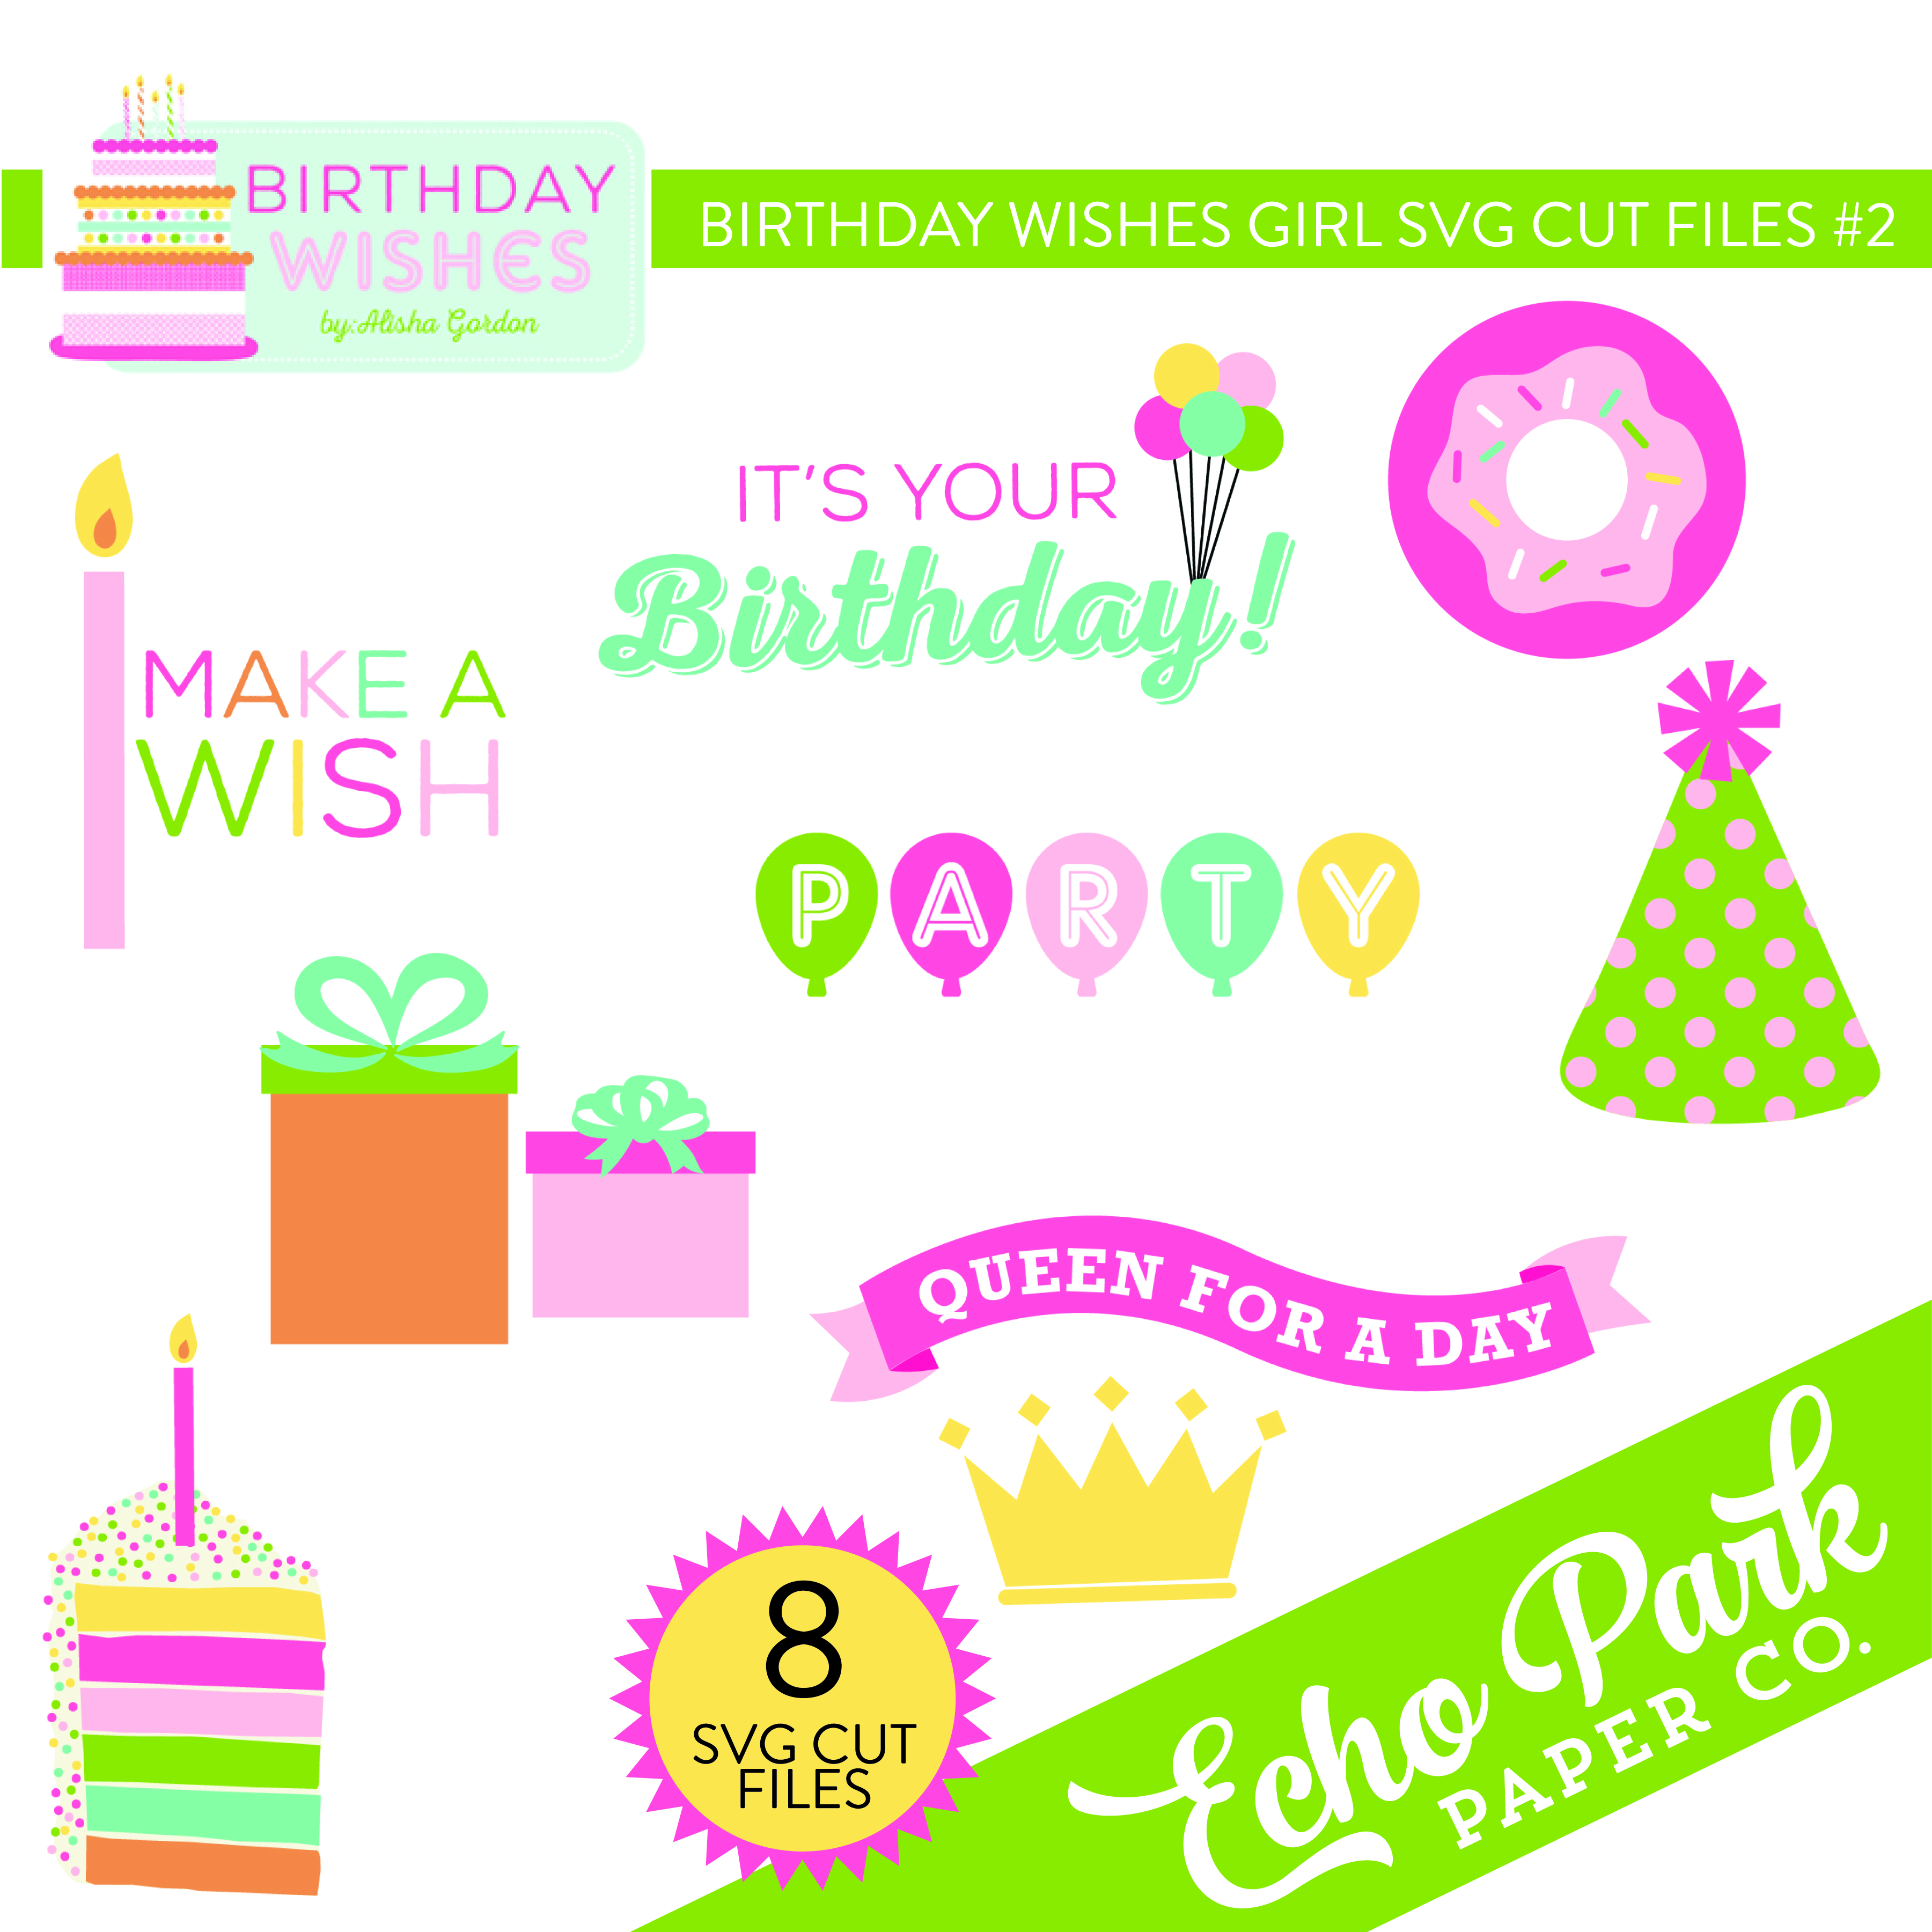 Birthday Wishes Girl SVG Cut File #2